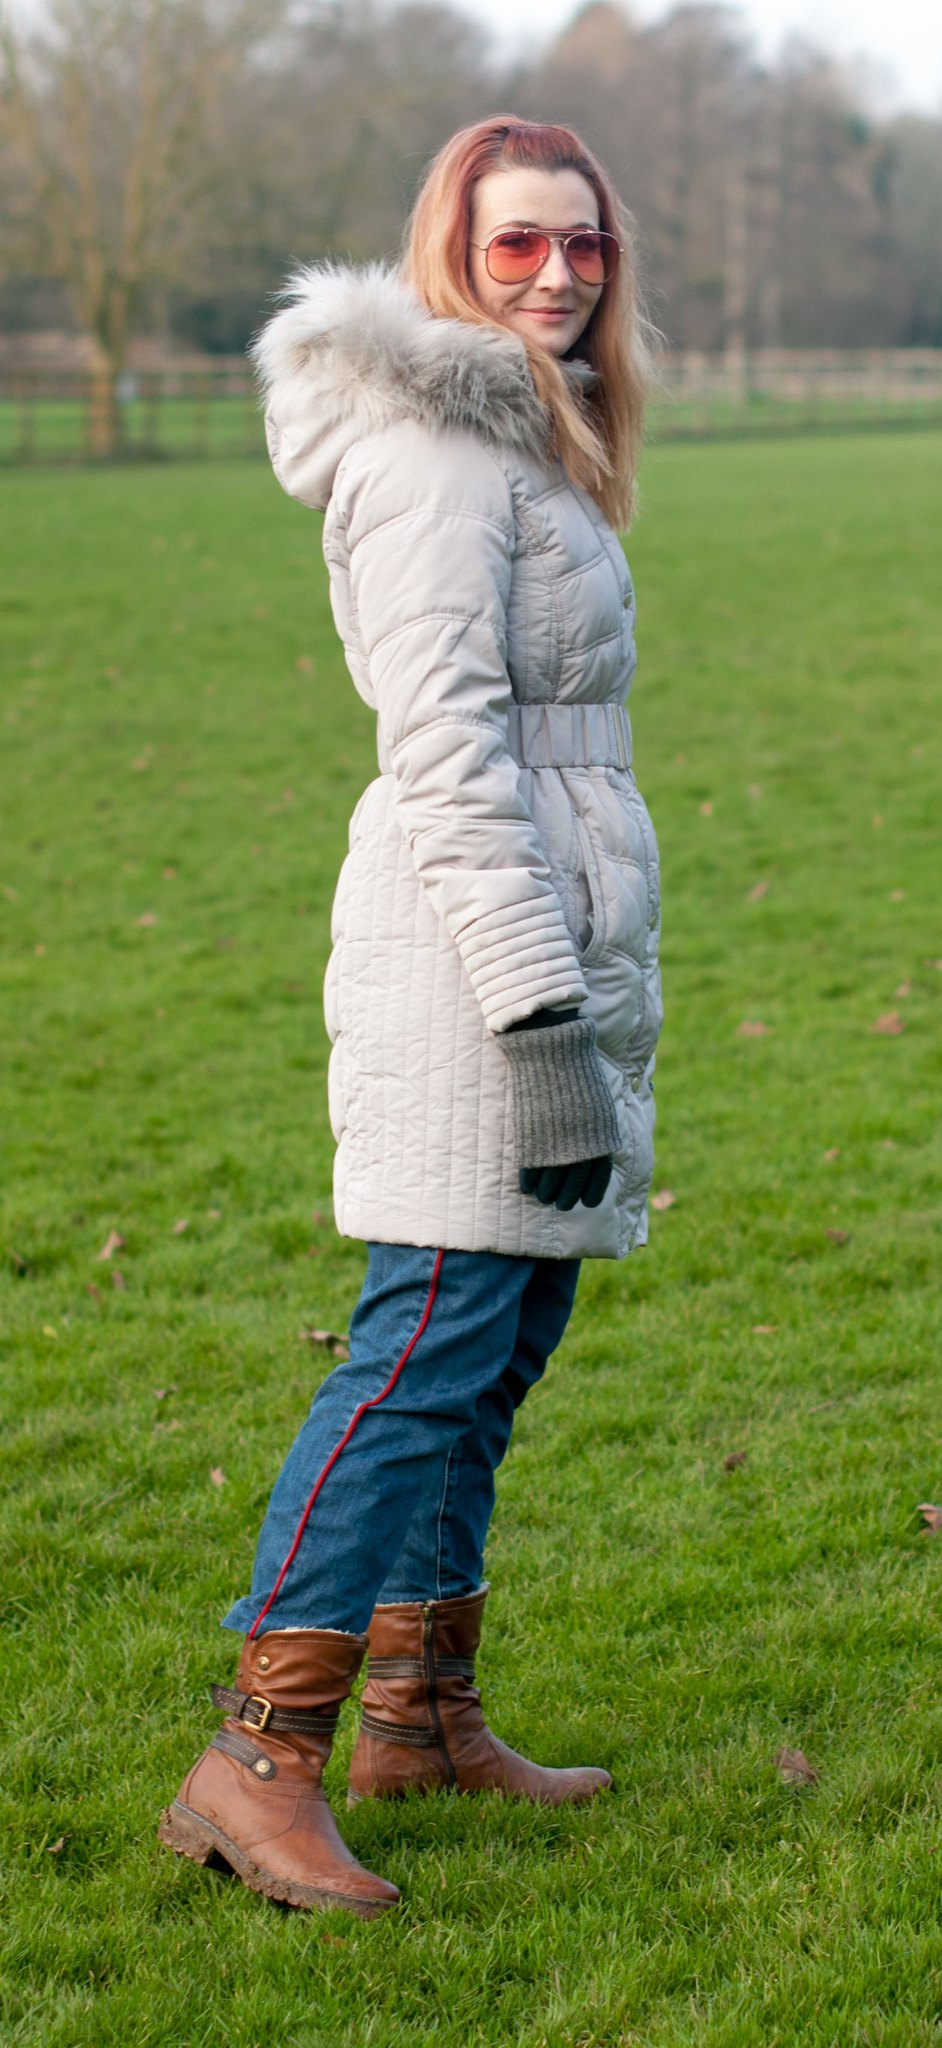 A Warm and Stylish Winter Coat - Grey Puffer With Faux Fur Hood | Not Dressed As Lamb, Over 40 Style